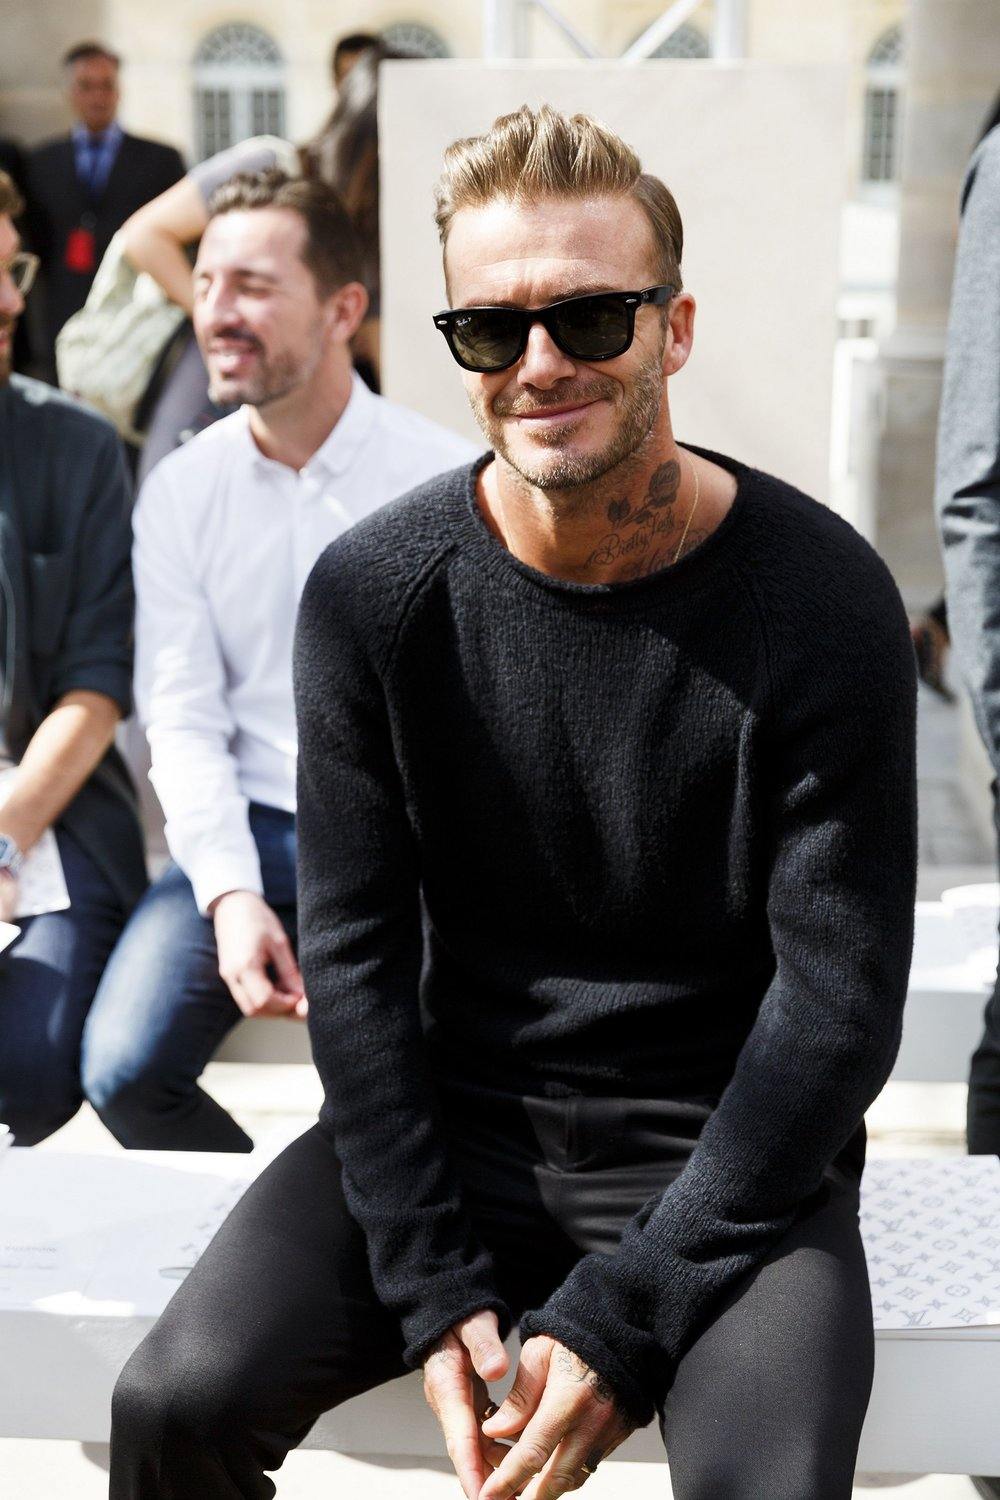 David-Beckham-Street-Style-Ideas-14.jpg